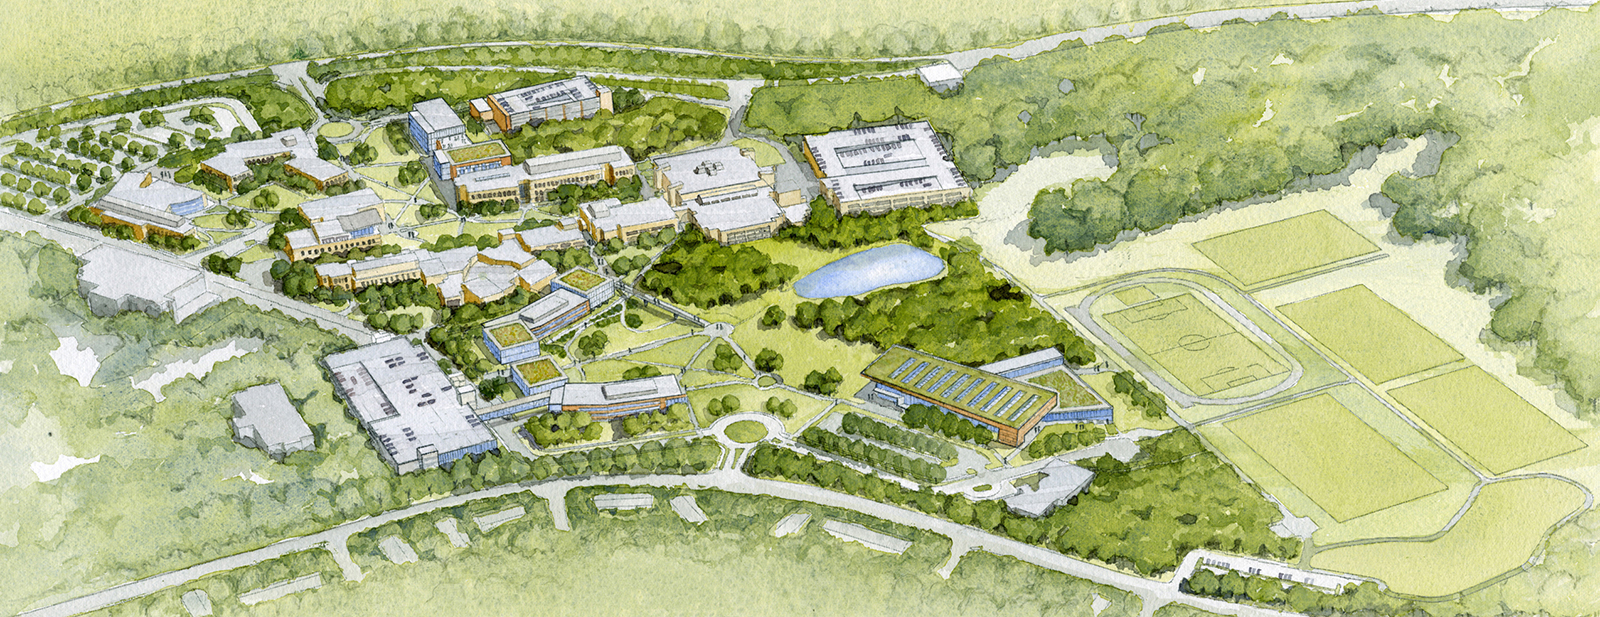 Howard Community College, Campus Master Plan